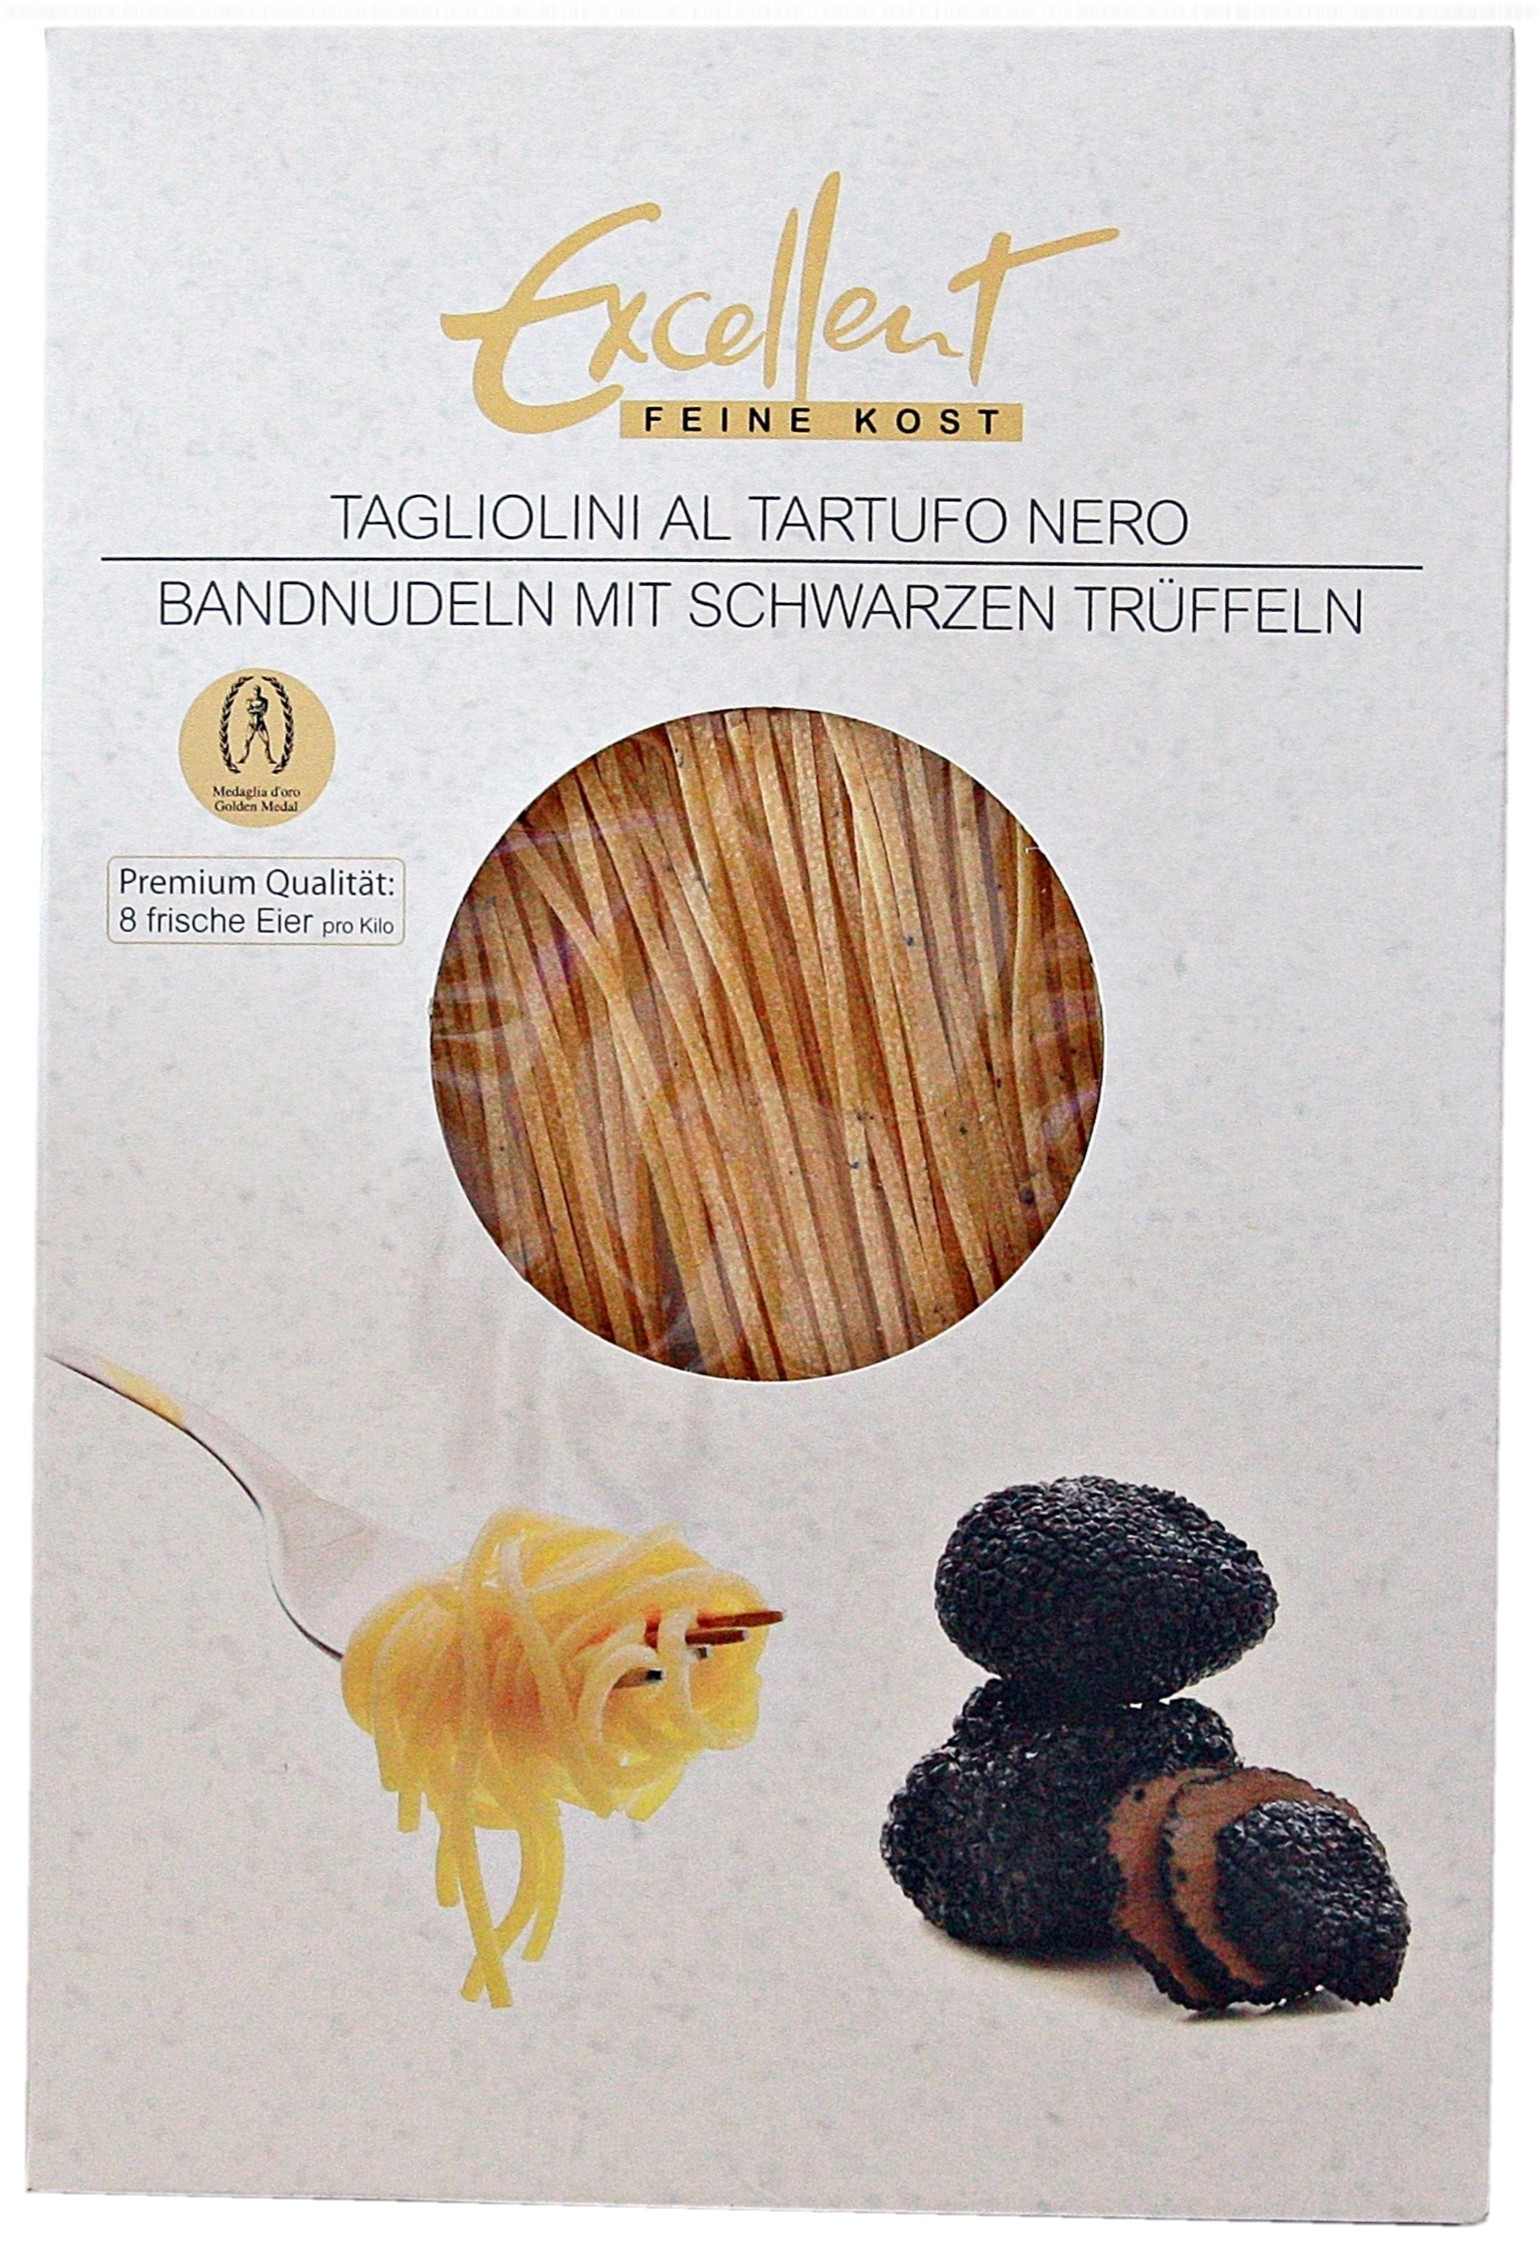 Tagliatelle Pasta with Black Truffle